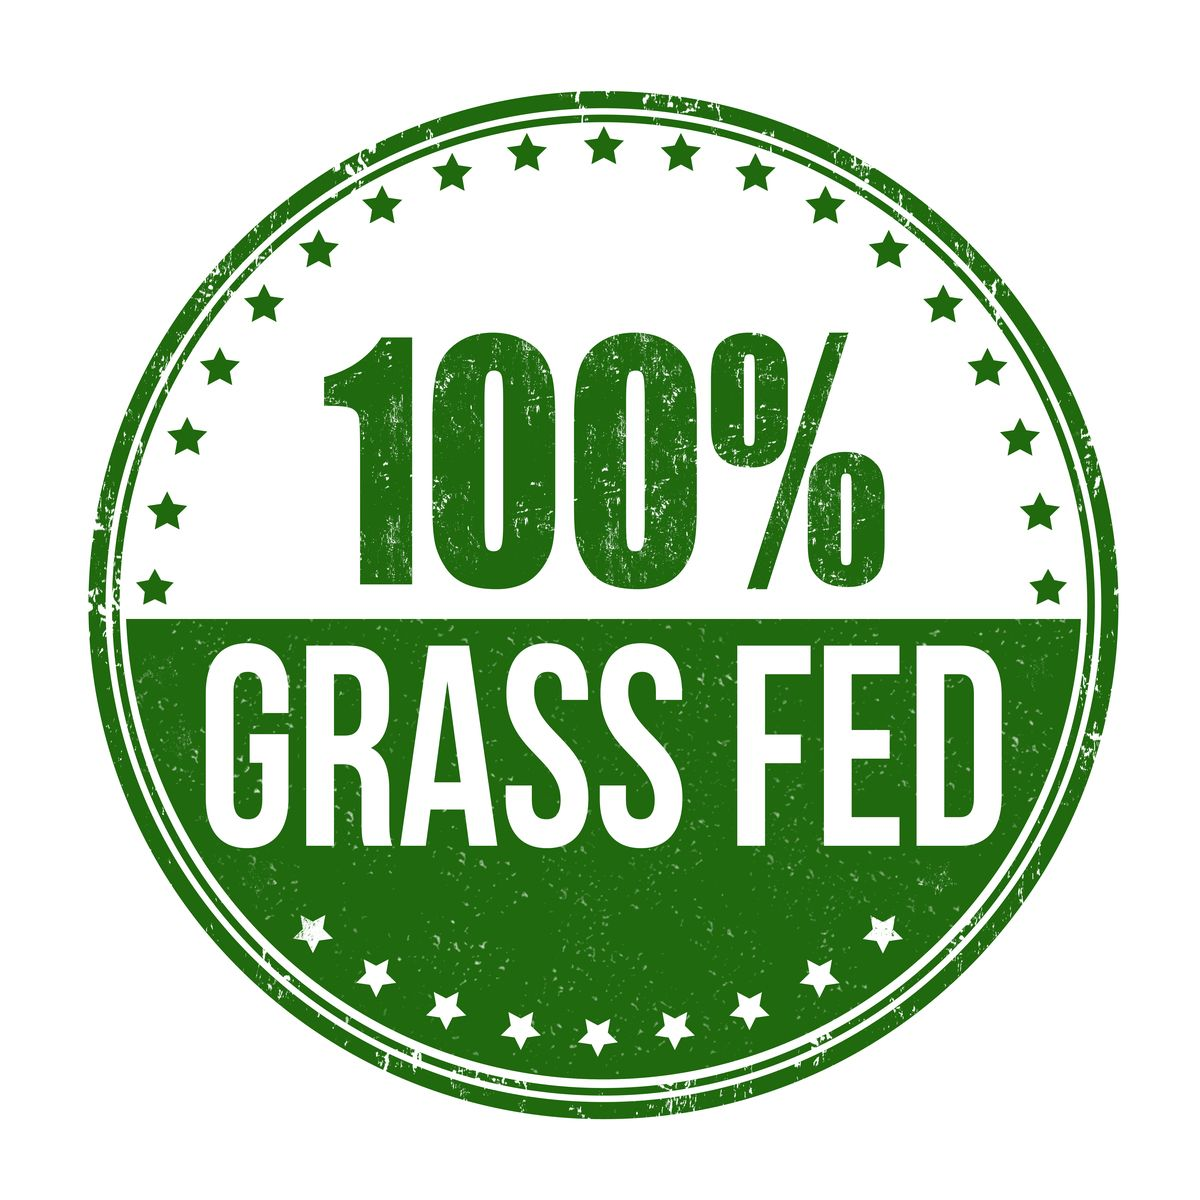 Check Out Our Highly Nutritious Whole Food Supplements That Are 100 Grass Fed And Grass Finished Beef And Lamb Organs And Glands From New Ze Glands Fed Grass